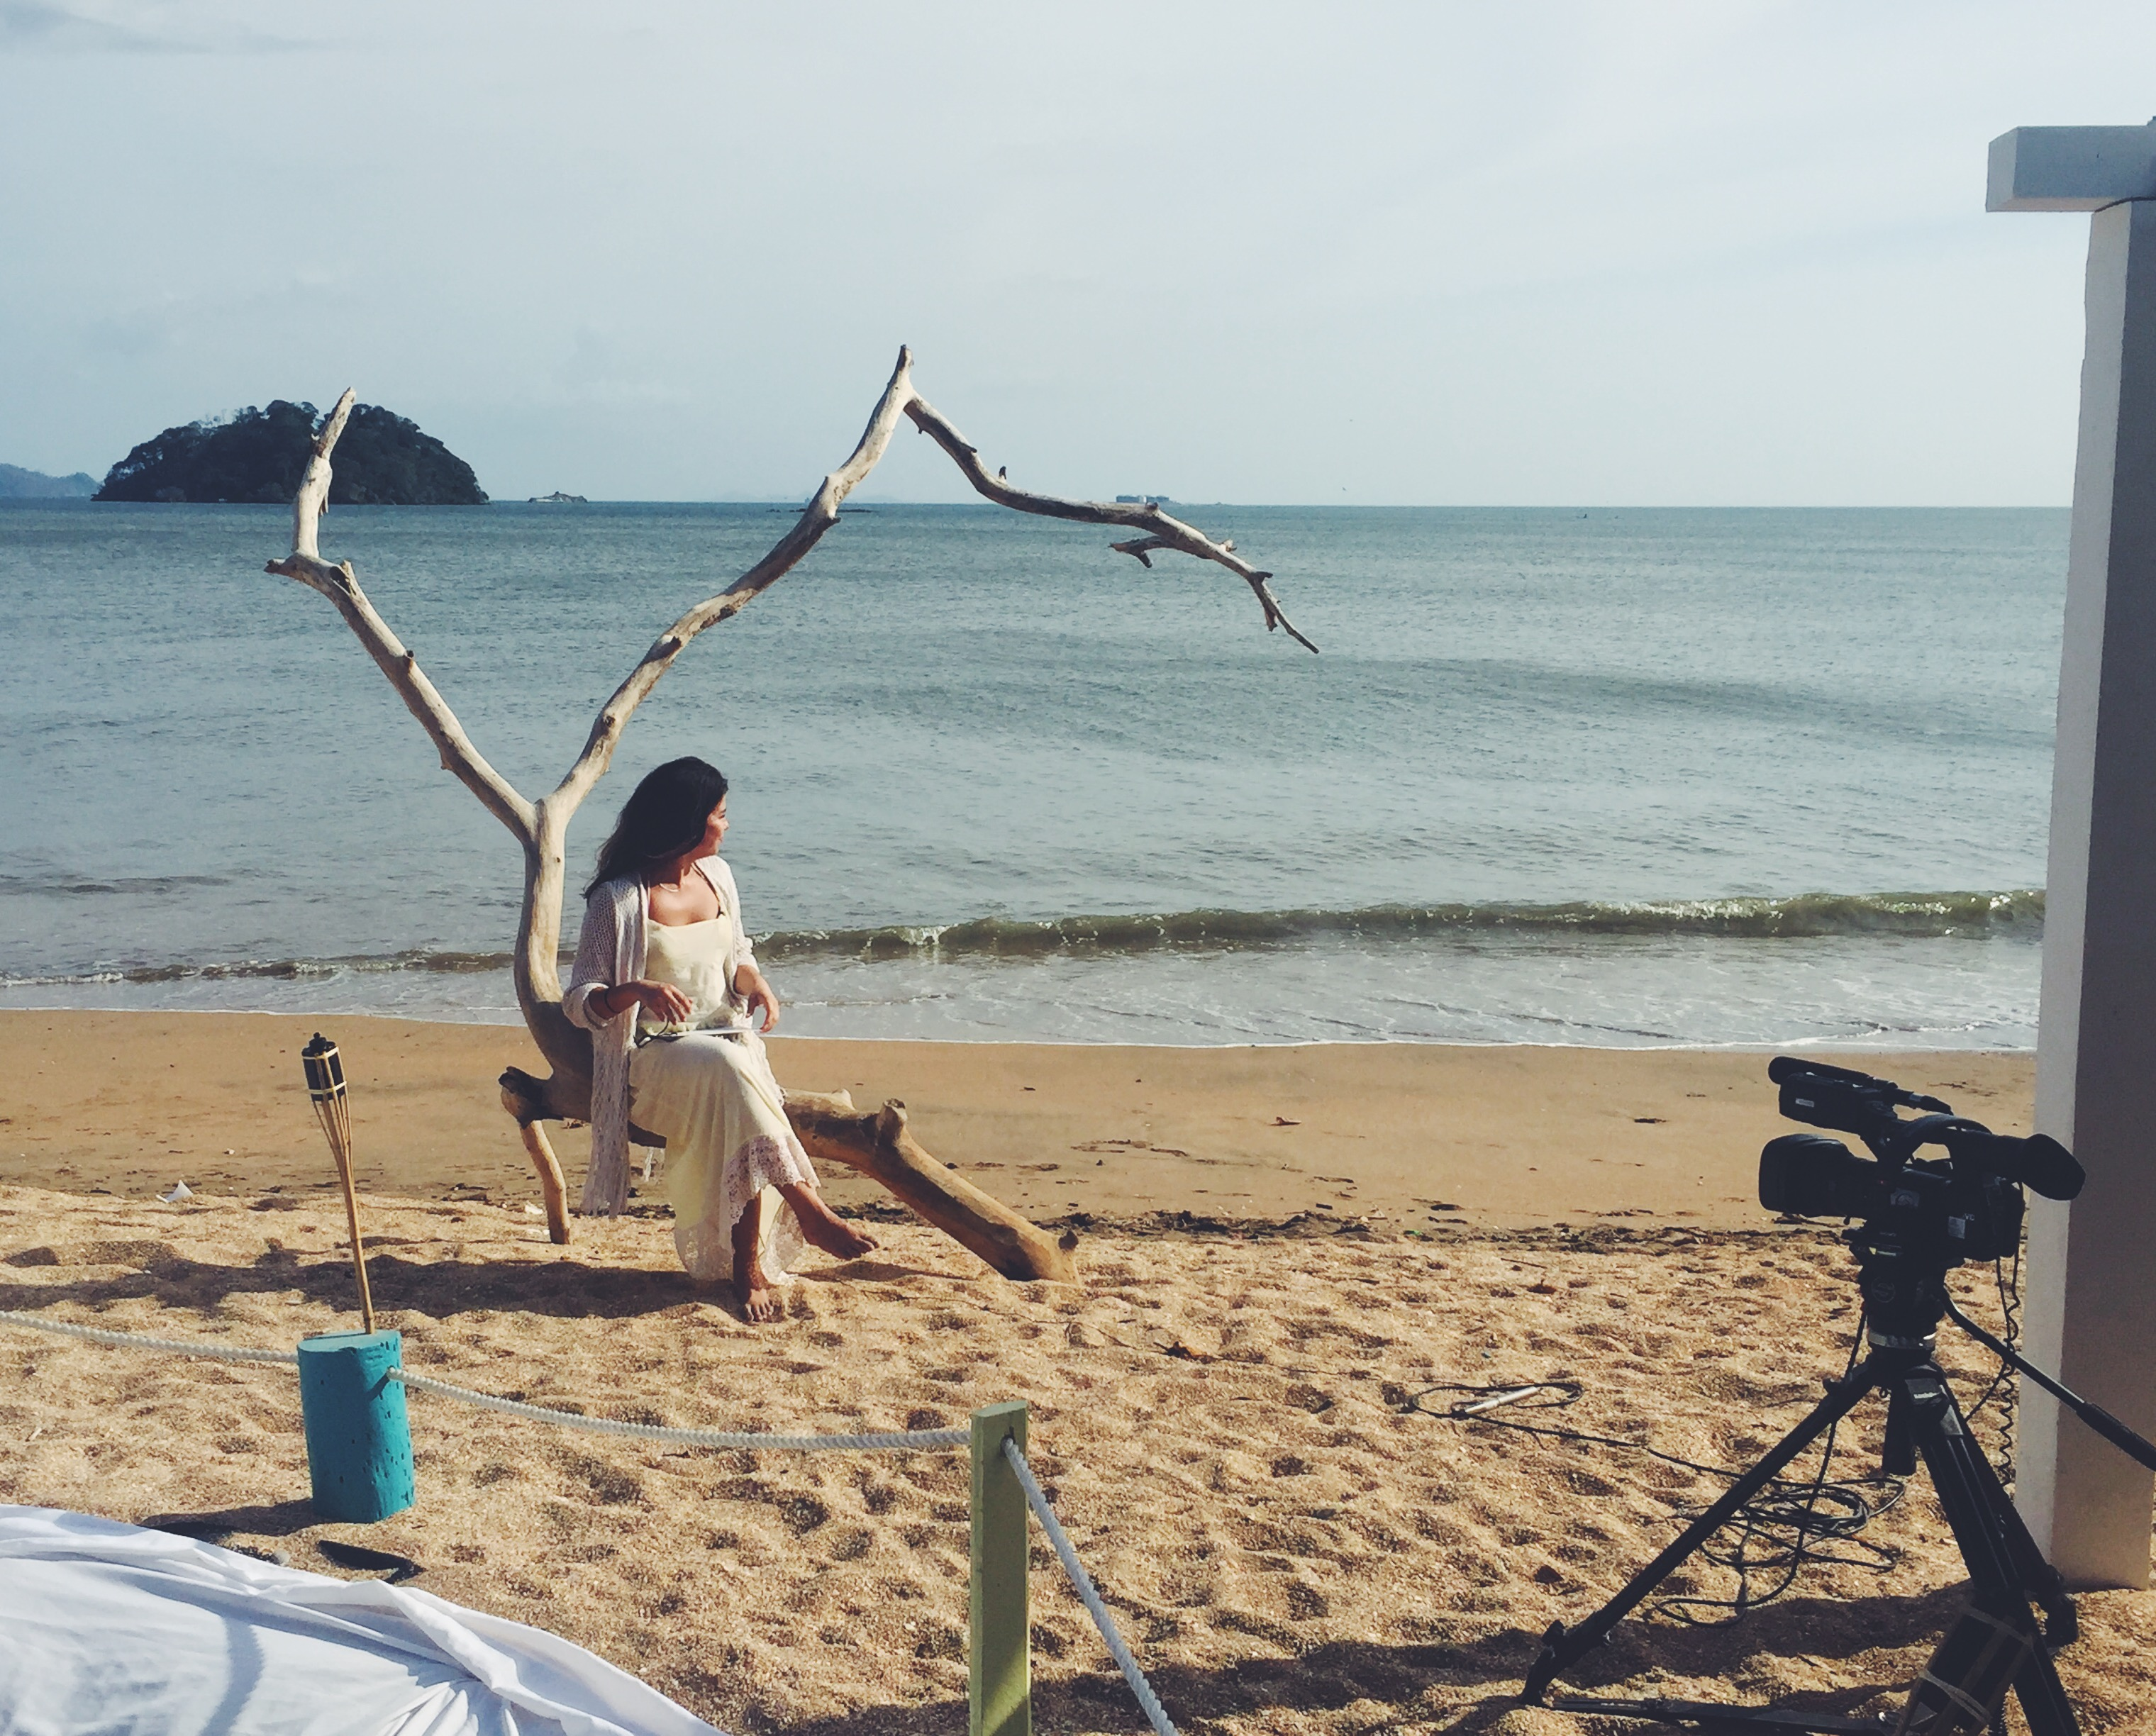 Filming on a Panamanian Beach